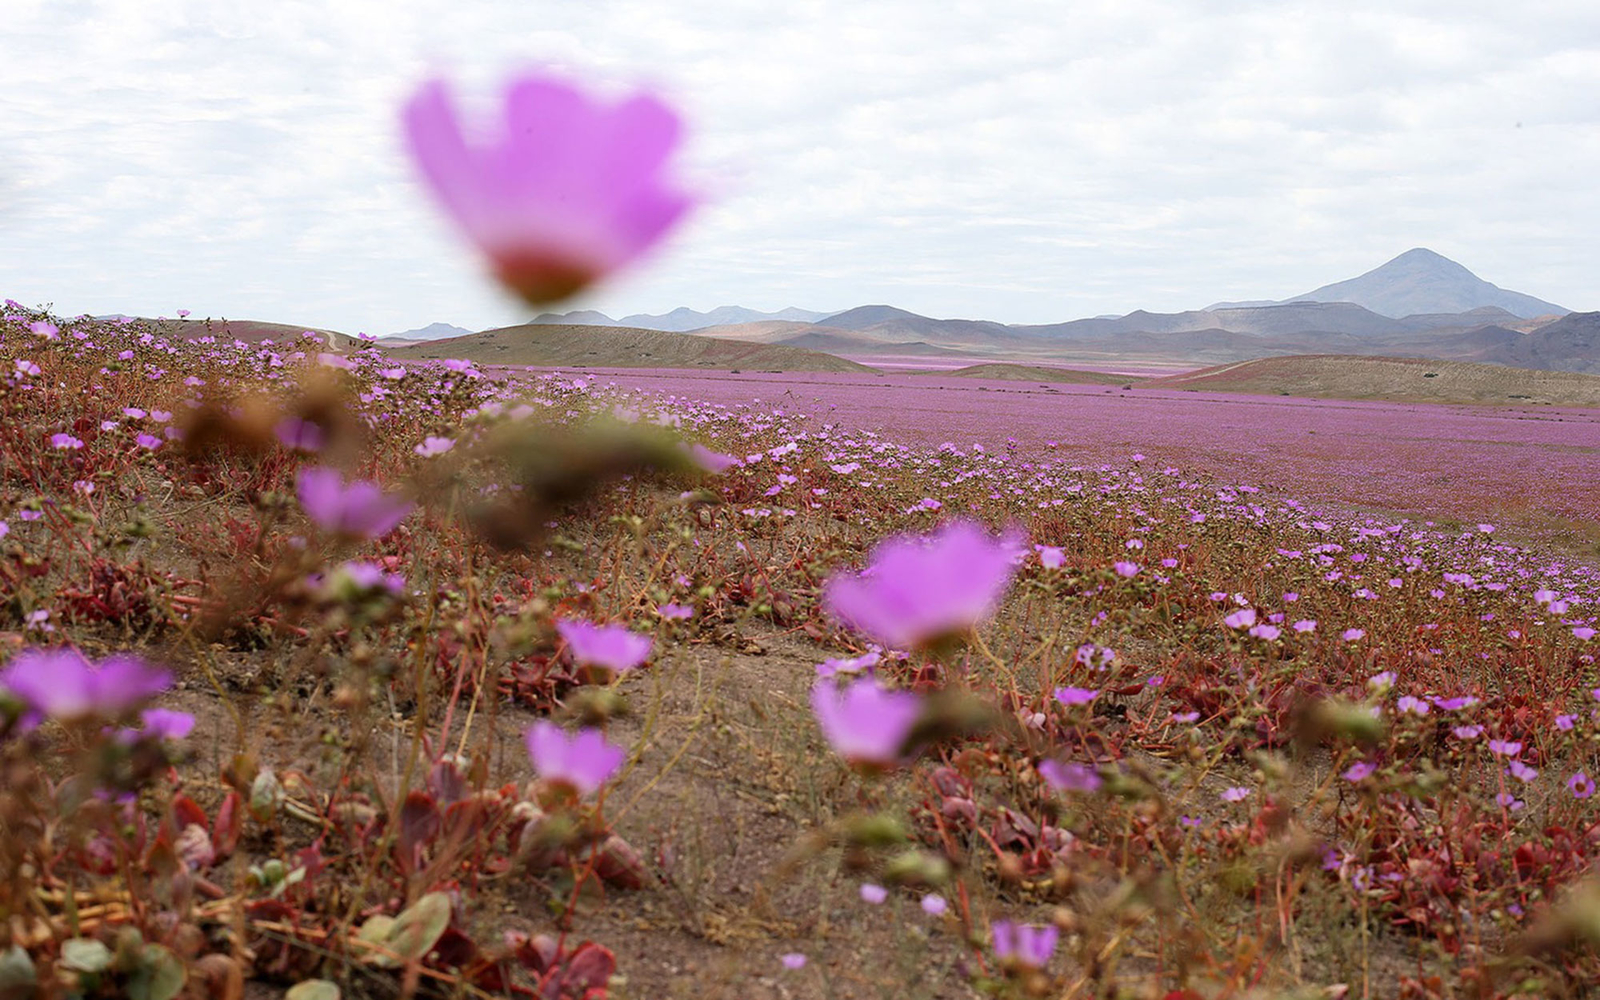 Atamacama Desert Bursts Into Bloom After Unusual Rainfall Travel